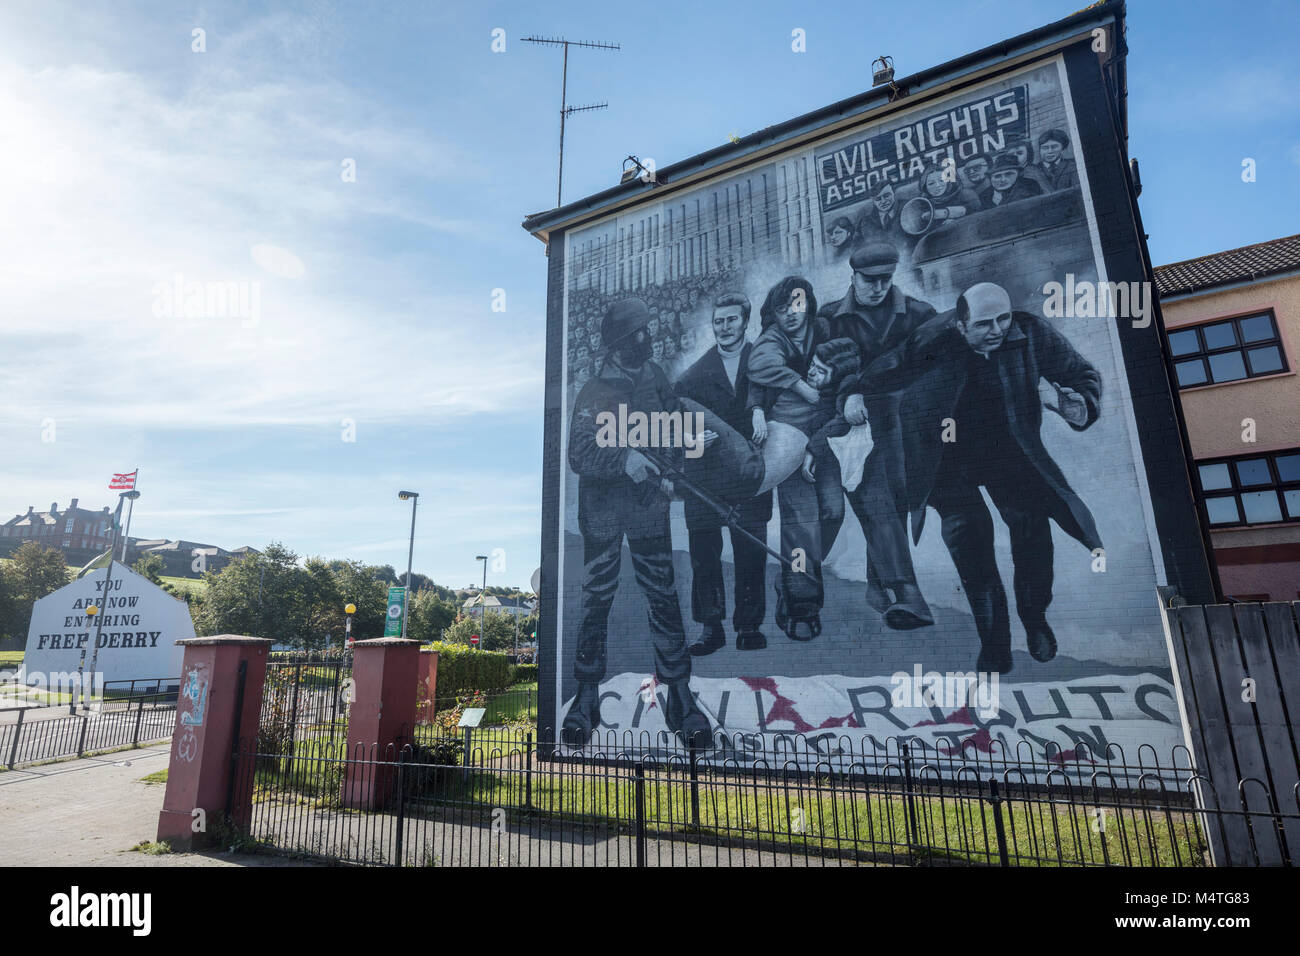 Republican mural commemorating Bloody Sunday, Bogside, Derry city, County Derry, Northern Ireland. - Stock Image